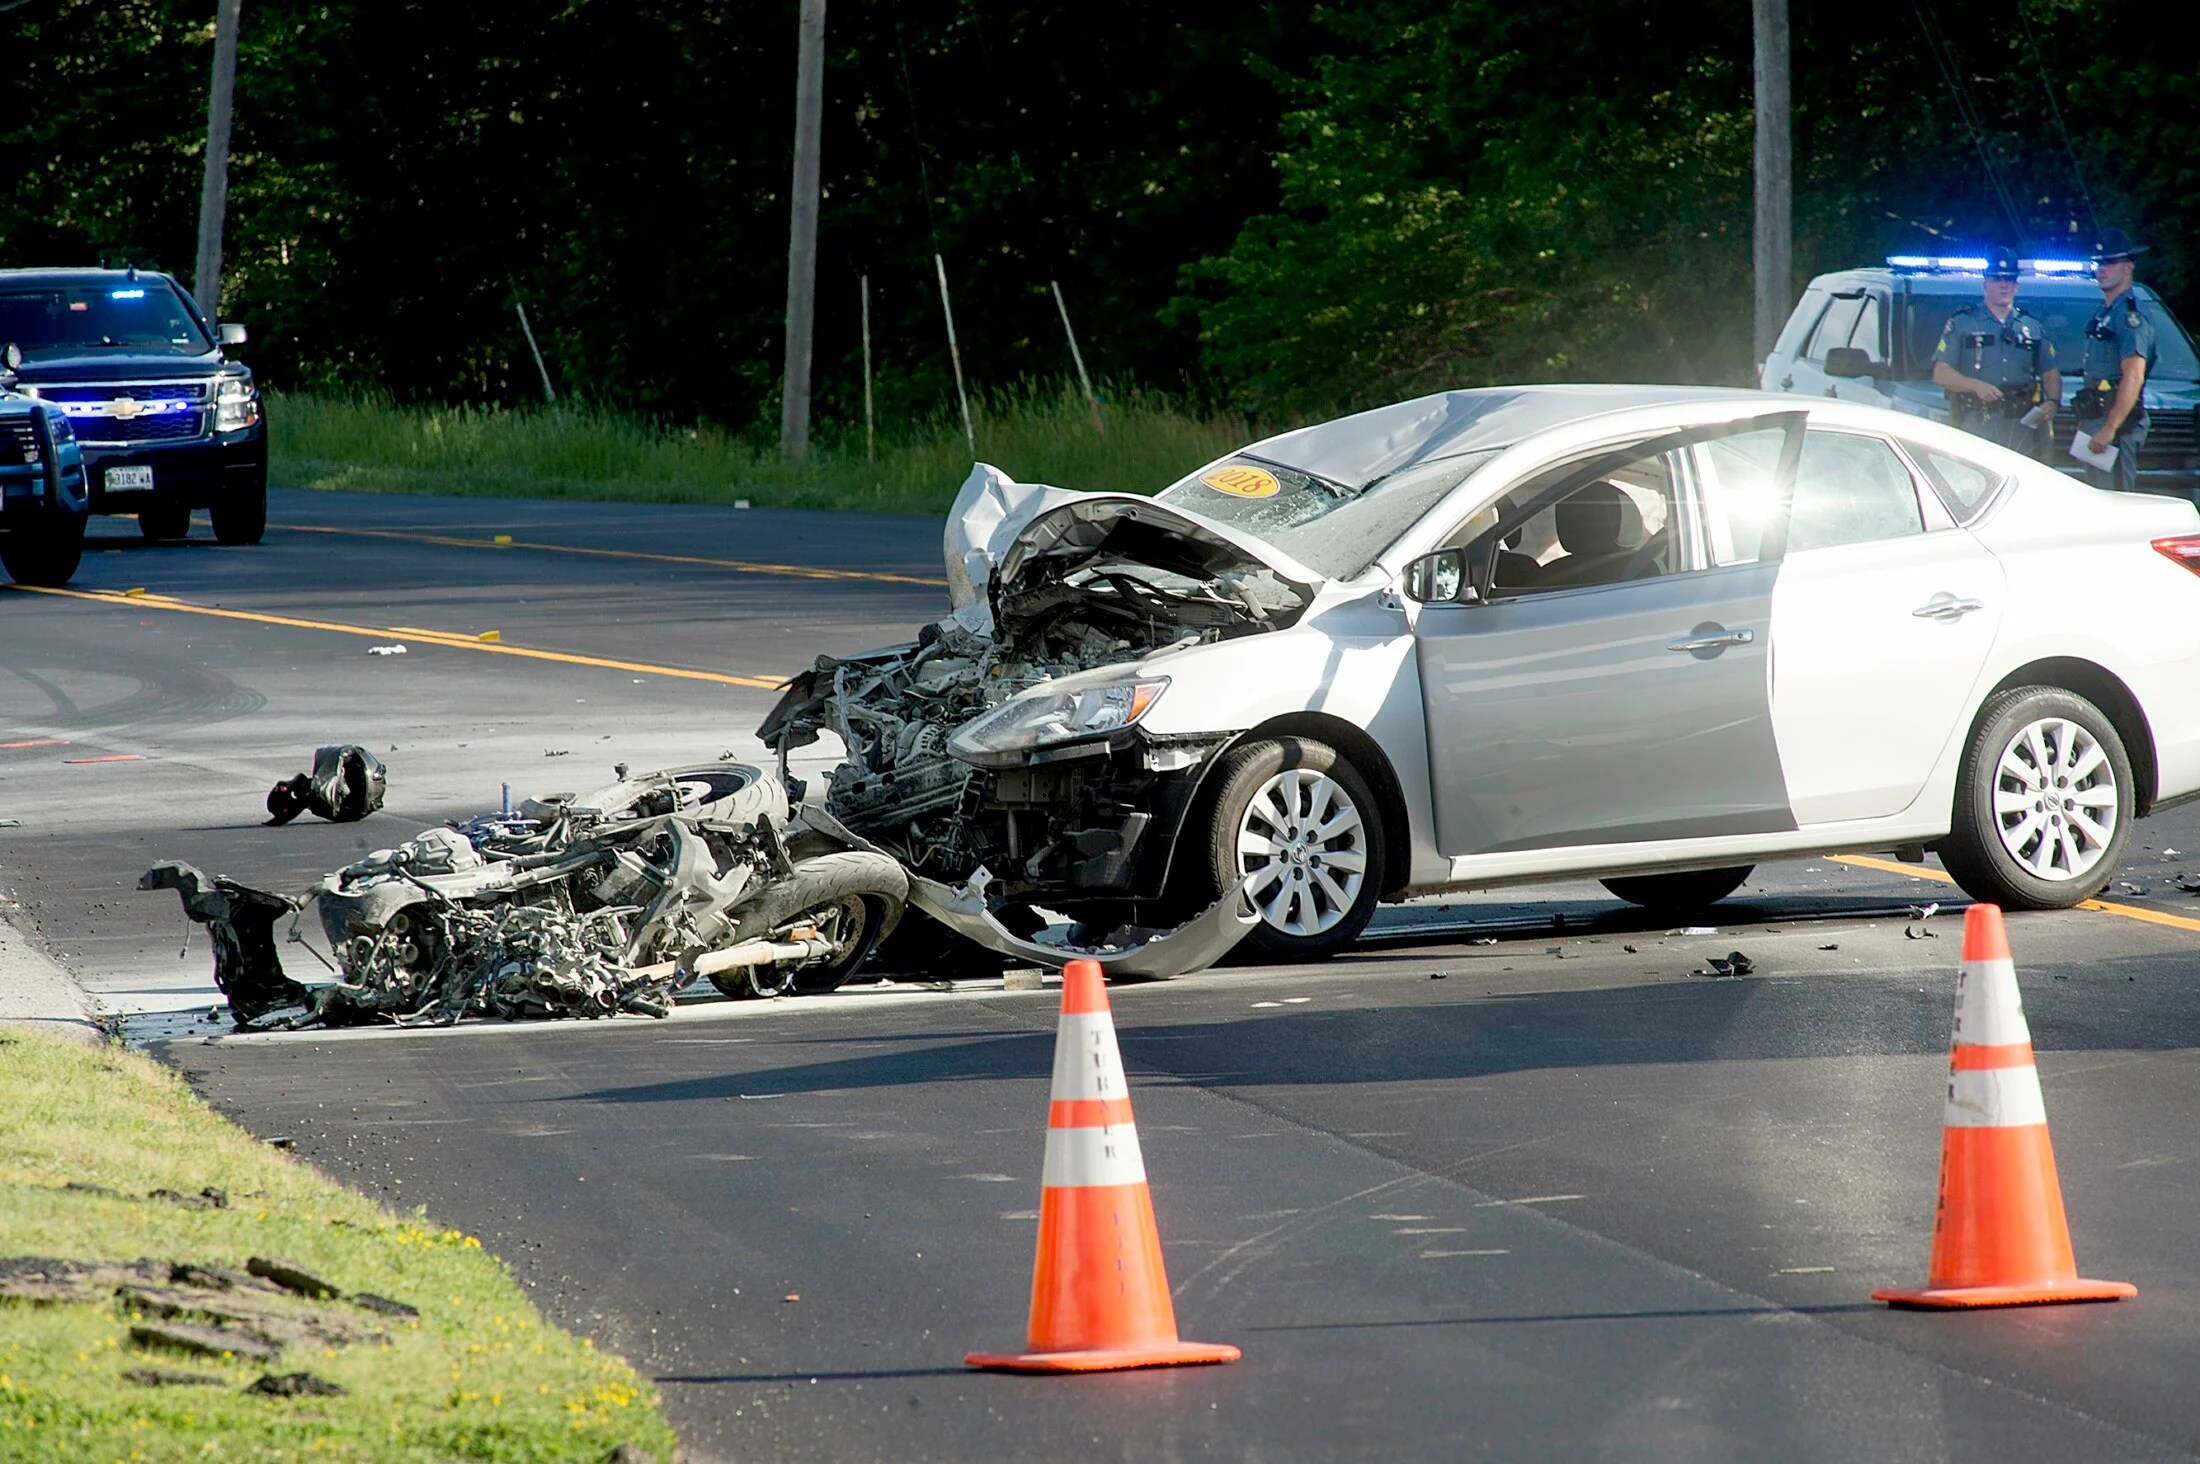 One person dead after car collides with motorcycles in Turner